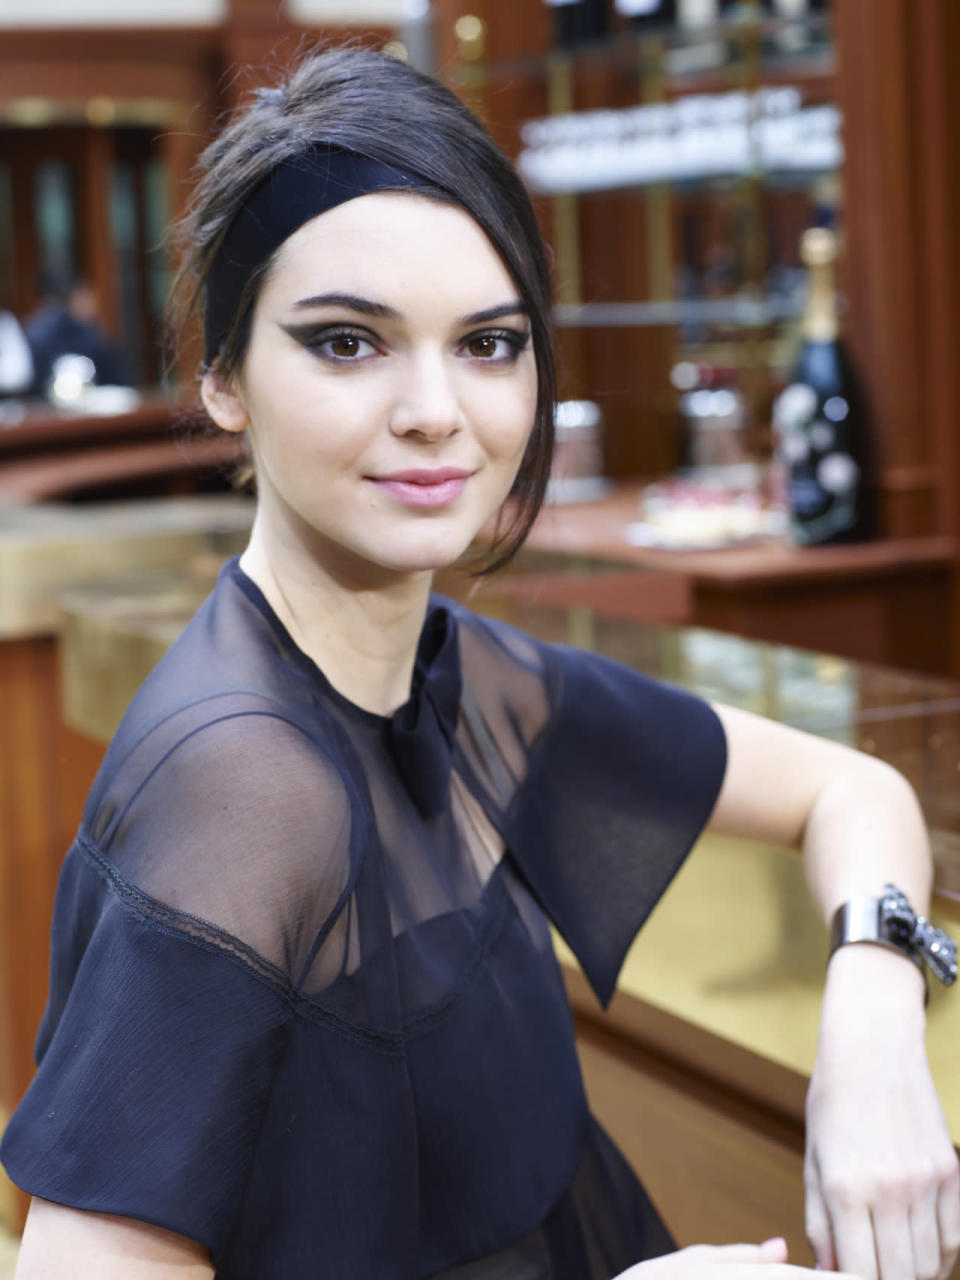 <p>Modeling at Chanel Fall 2015 in Paris, Jenner channels the modern-day French girl in smoky winged-tip eyeliner and a velvet black ribbon in her hair. <i>(Photo: Getty Images)</i></p>